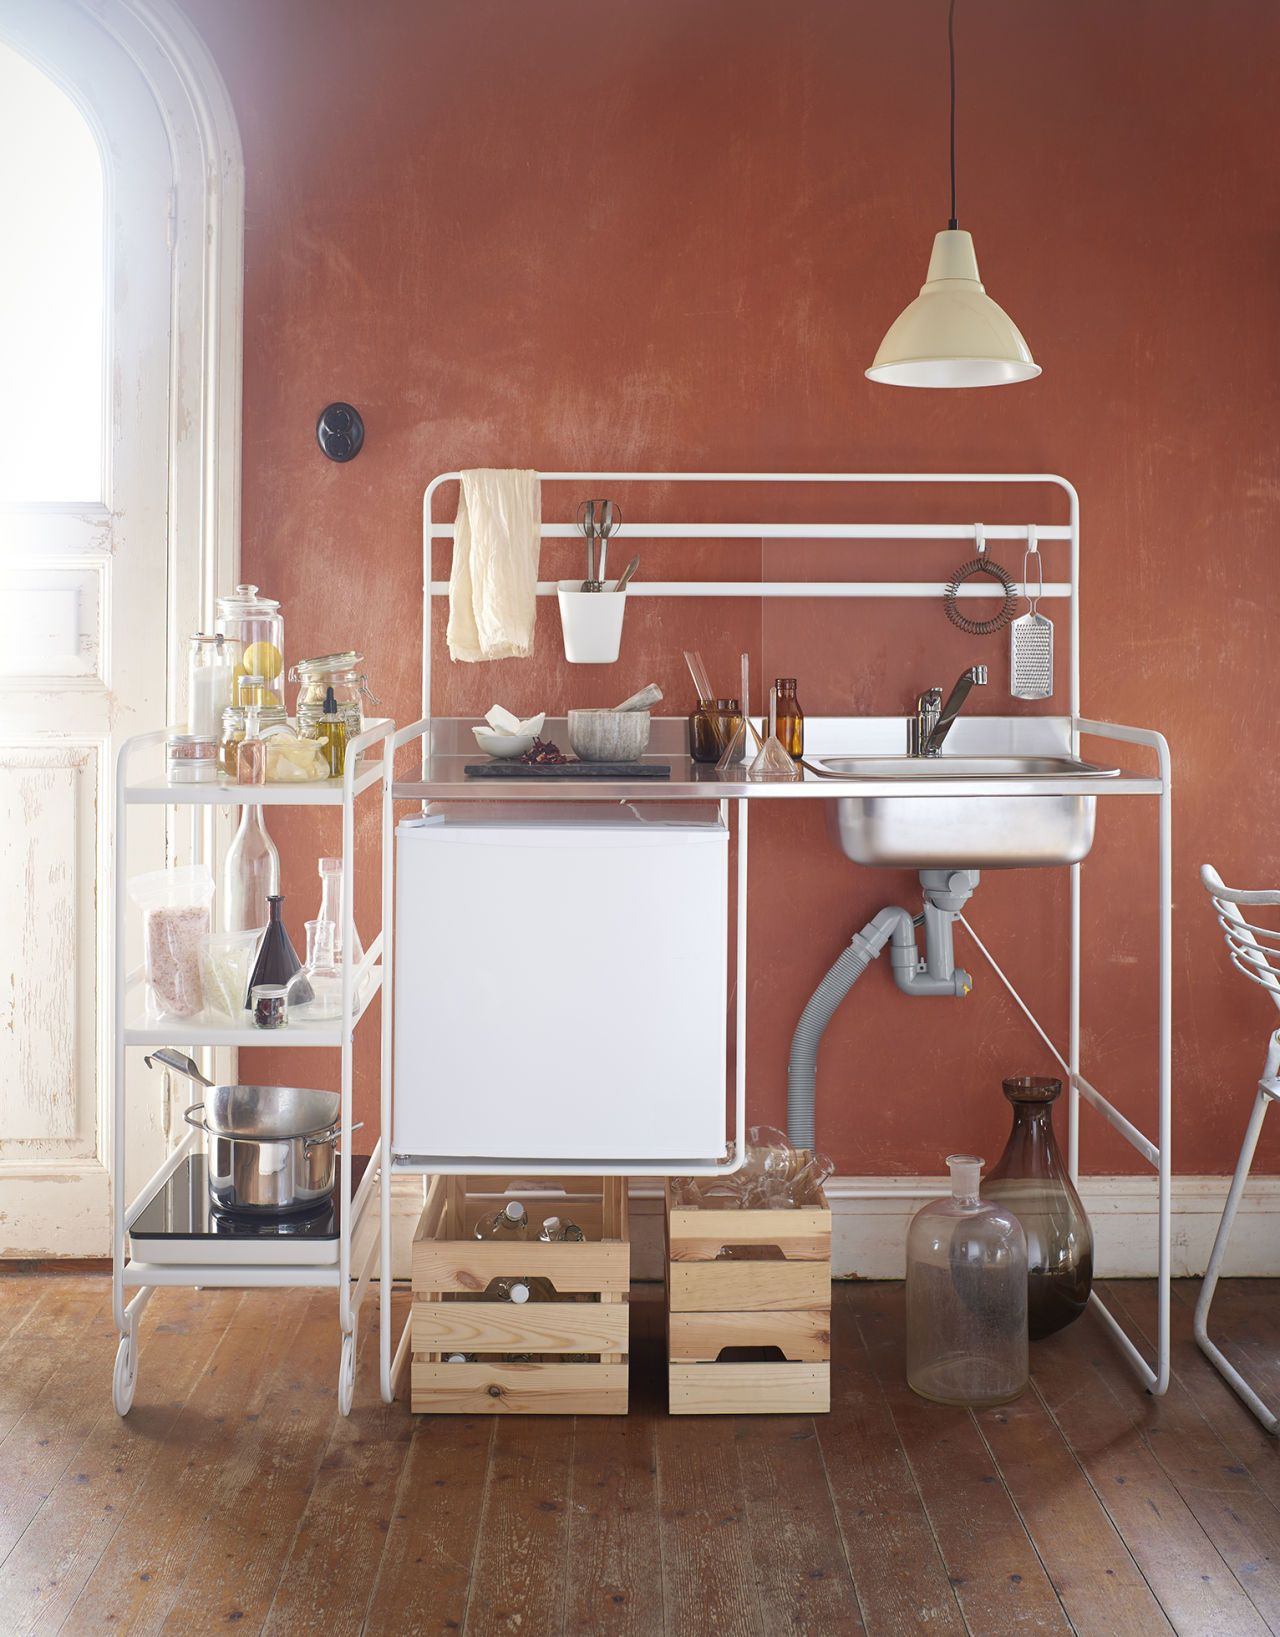 IKEA Is Selling An Entire Kitchen For 112 Small space